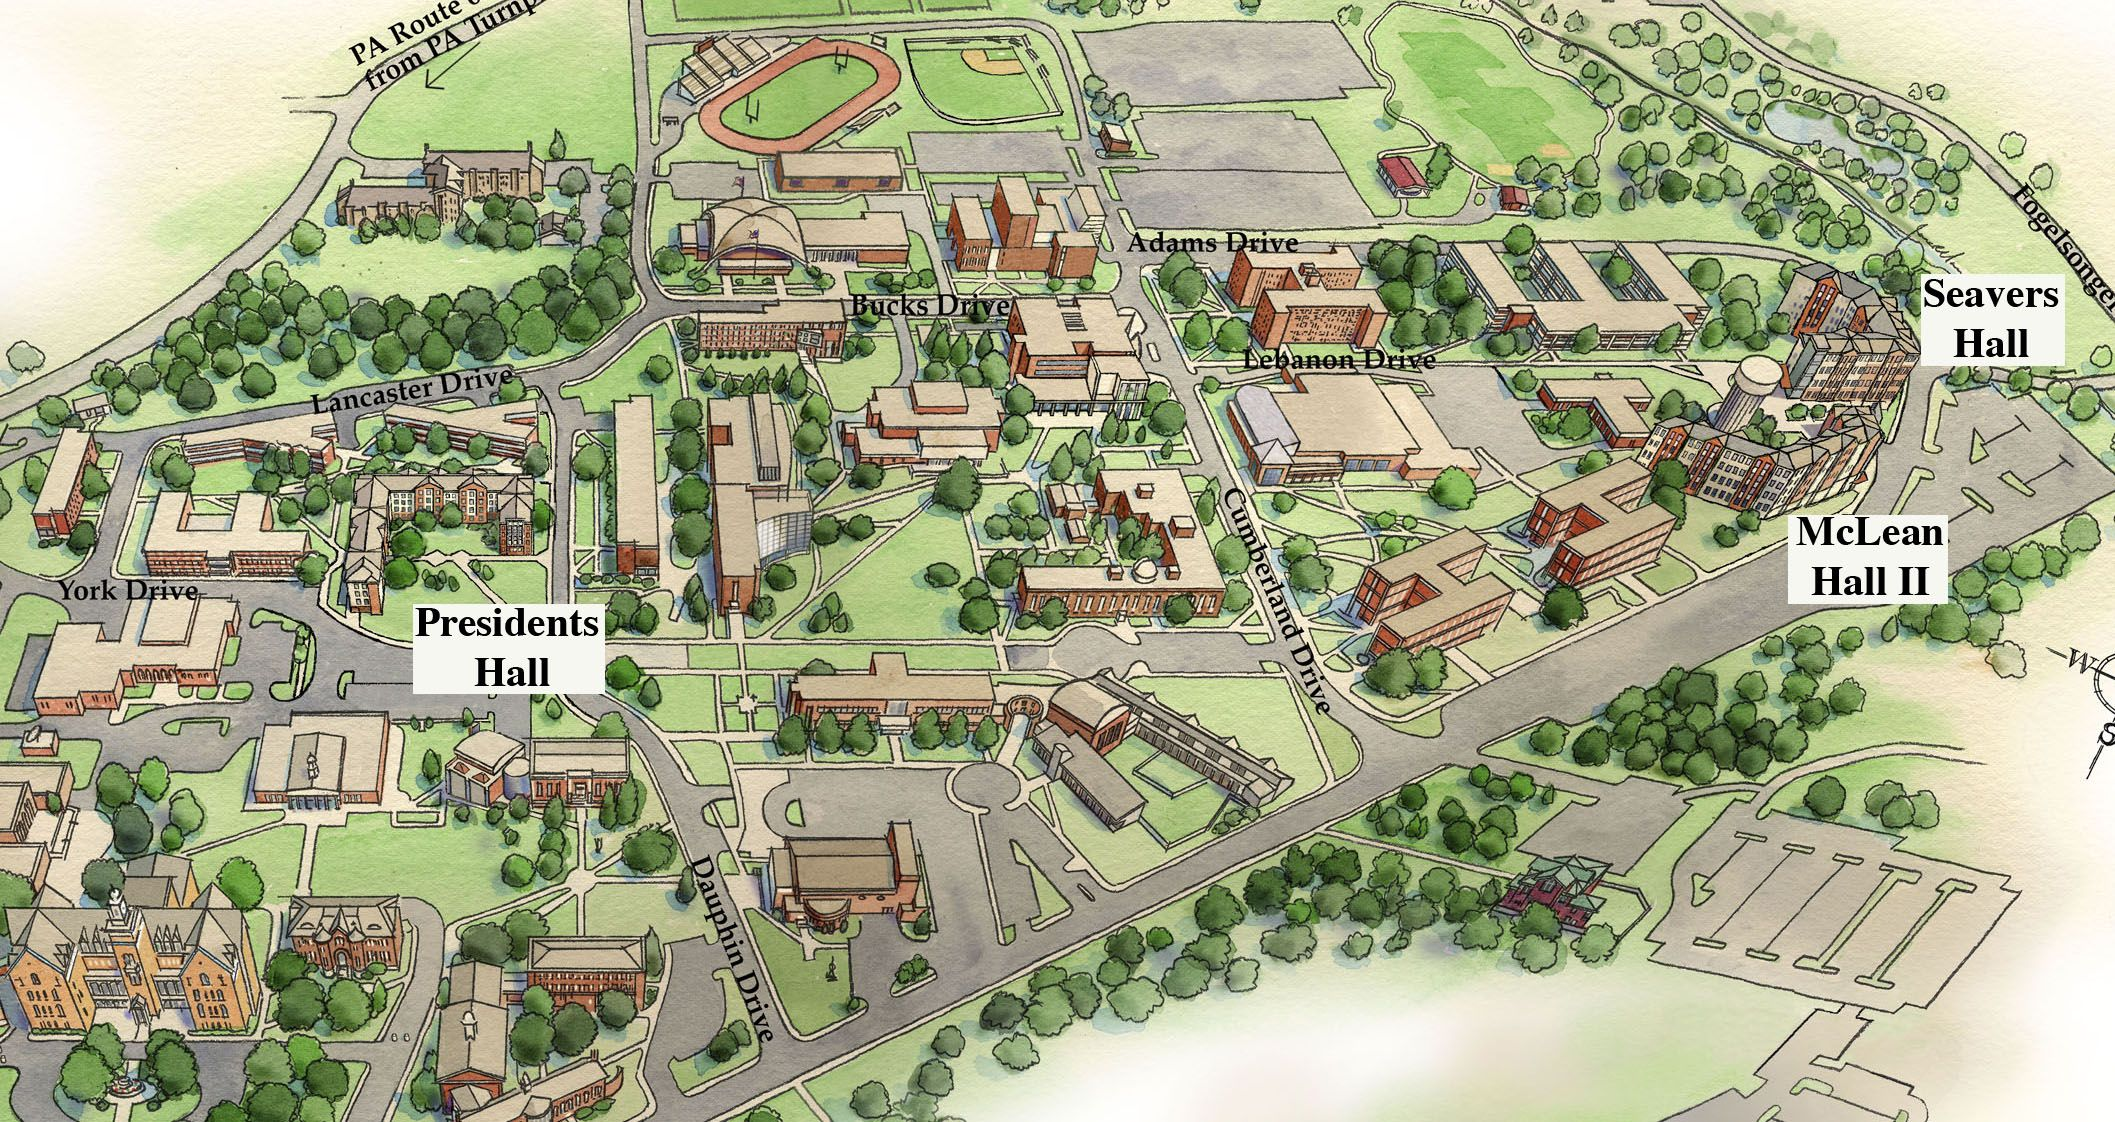 Cumberland County College Campus Map.Shippensburg University Residence Halls Explore Campus Pinterest